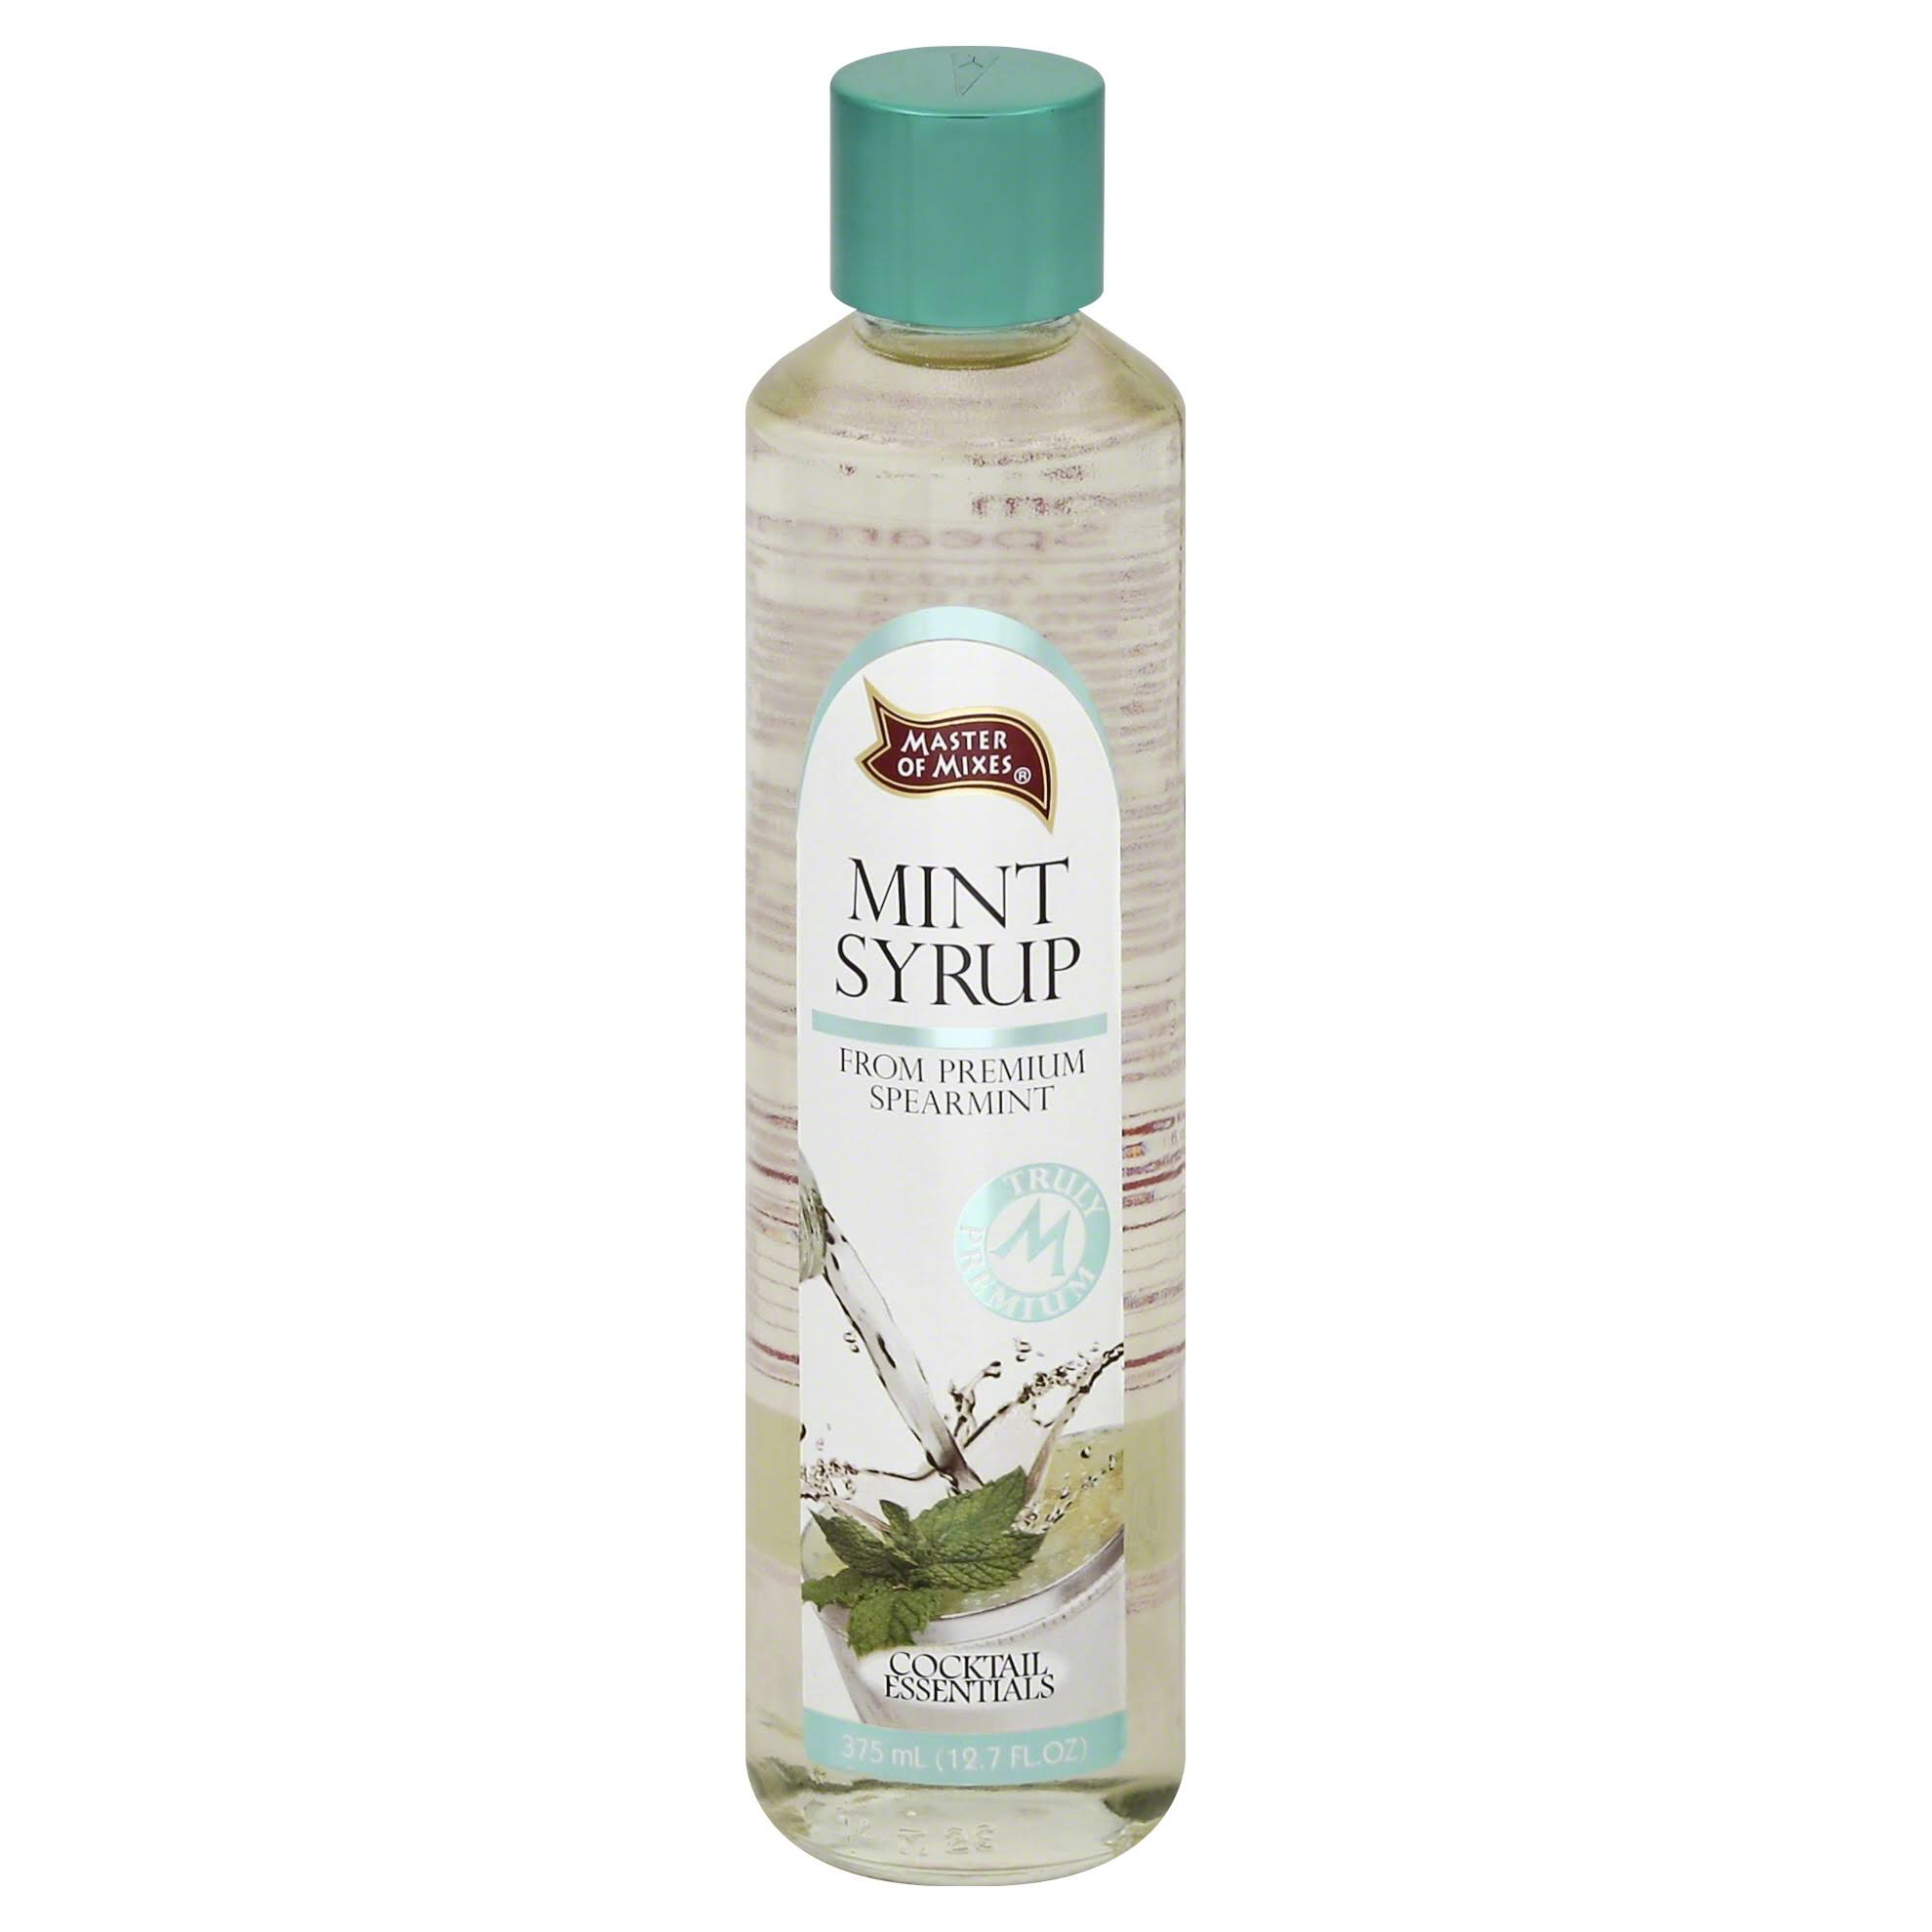 Master Of Mixes Syrup - Mint, 12.7oz